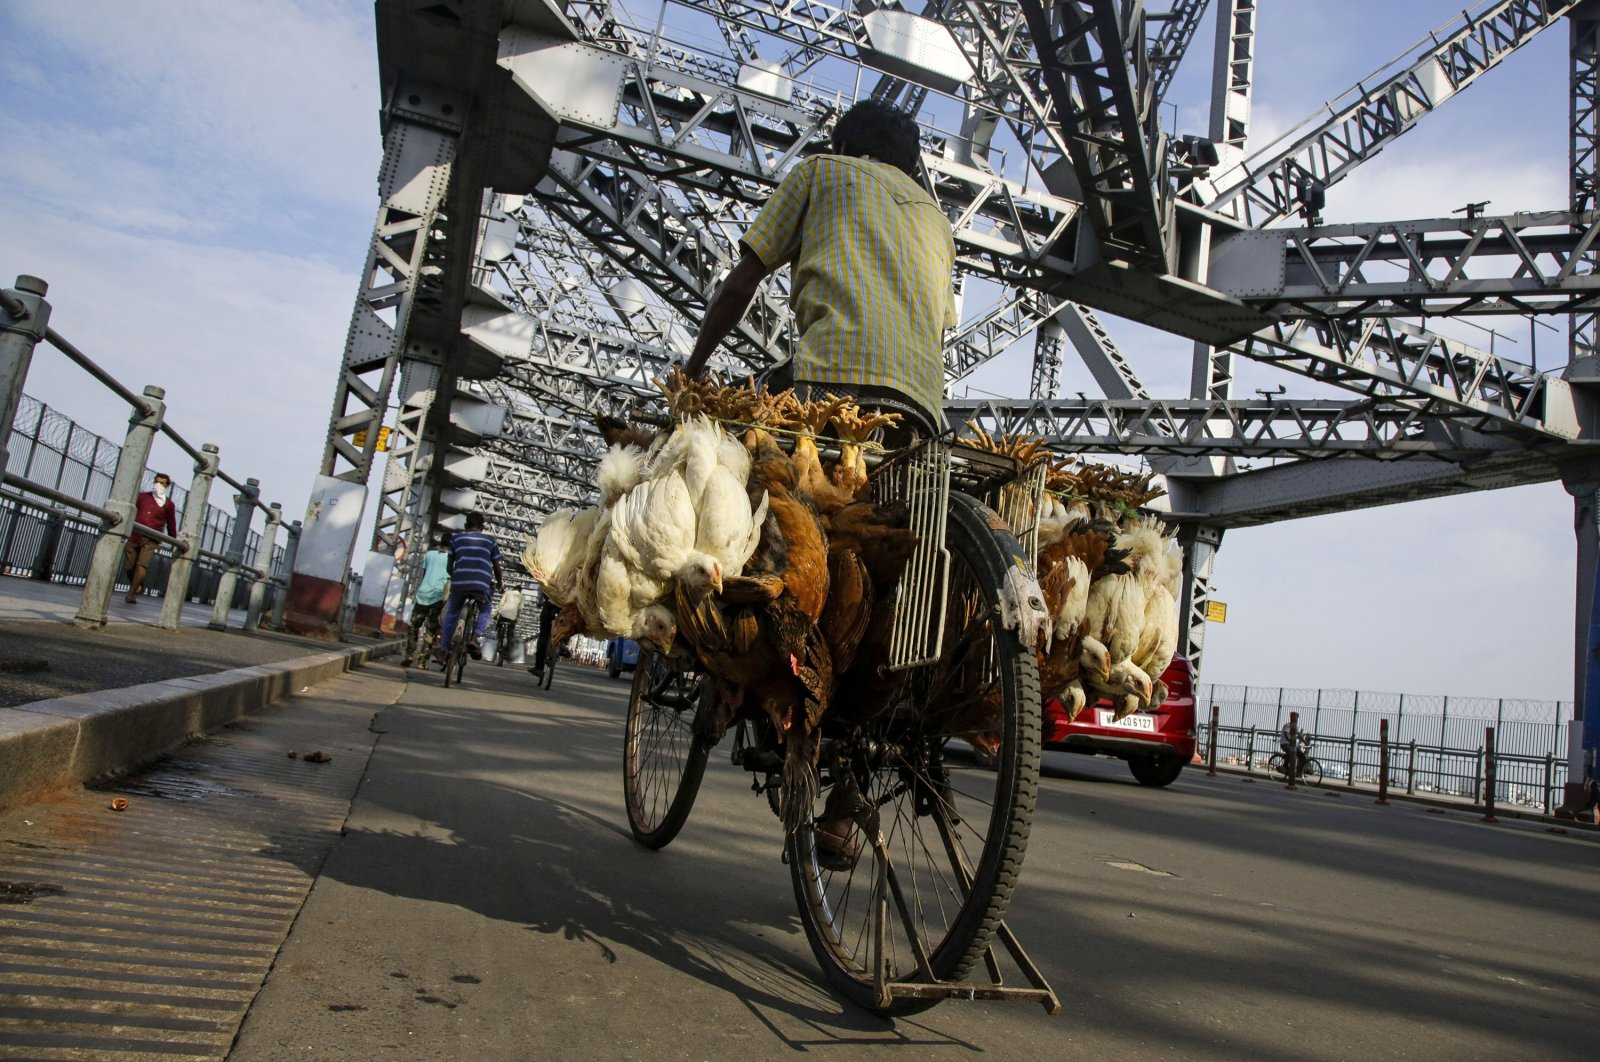 A vendor carries chickens for sale and rides past the landmark Howrah Bridge in Kolkata, in the state of West Bengal, eastern India, June 3, 2020. (AP Photo)